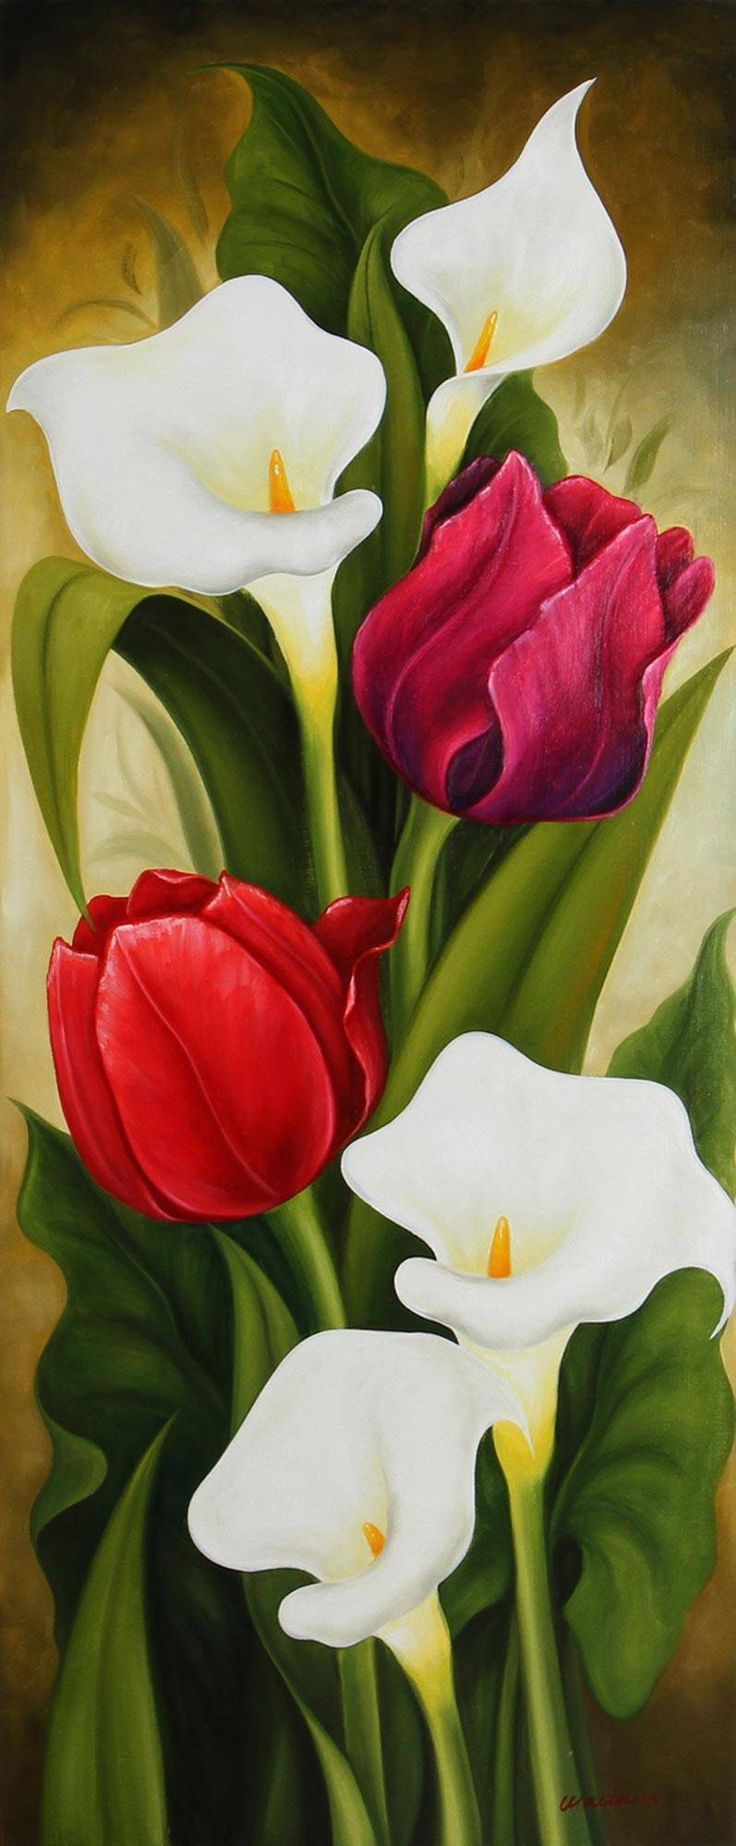 Signed Still Life Painting Of Tulips And Calla Lilies Tulips And Calla Lilies Calla Life Lilies Paintin Tulip Painting Flower Drawing Lily Painting